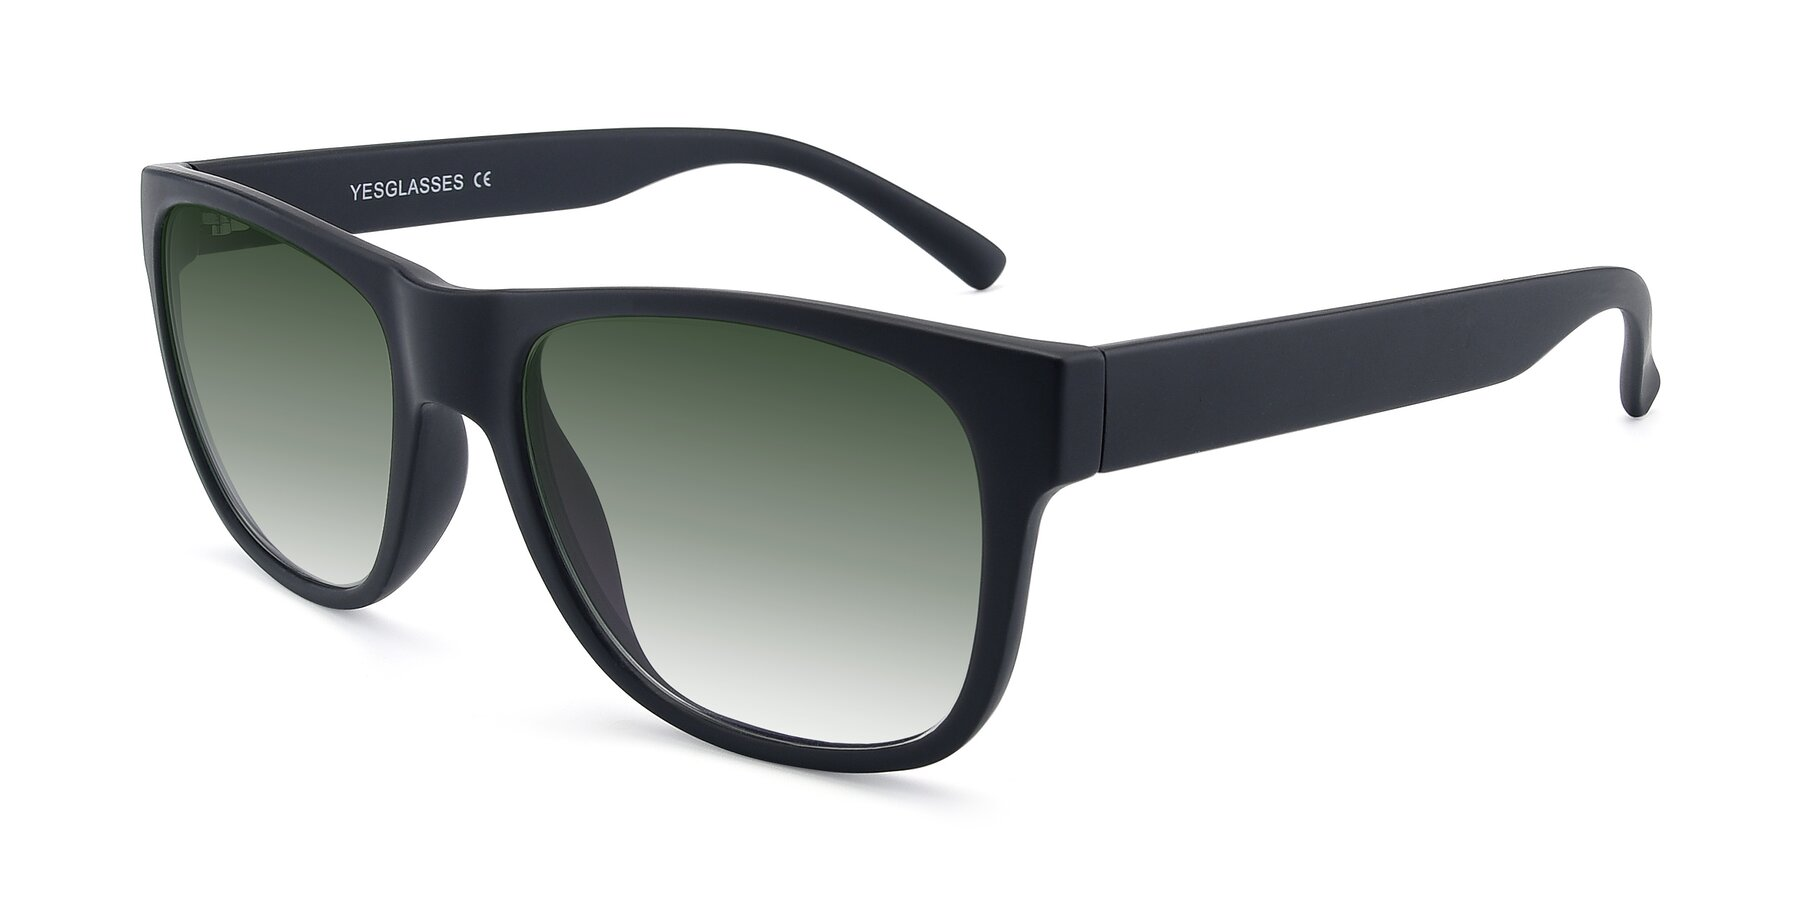 Angle of SSR213 in Matte Black with Green Gradient Lenses